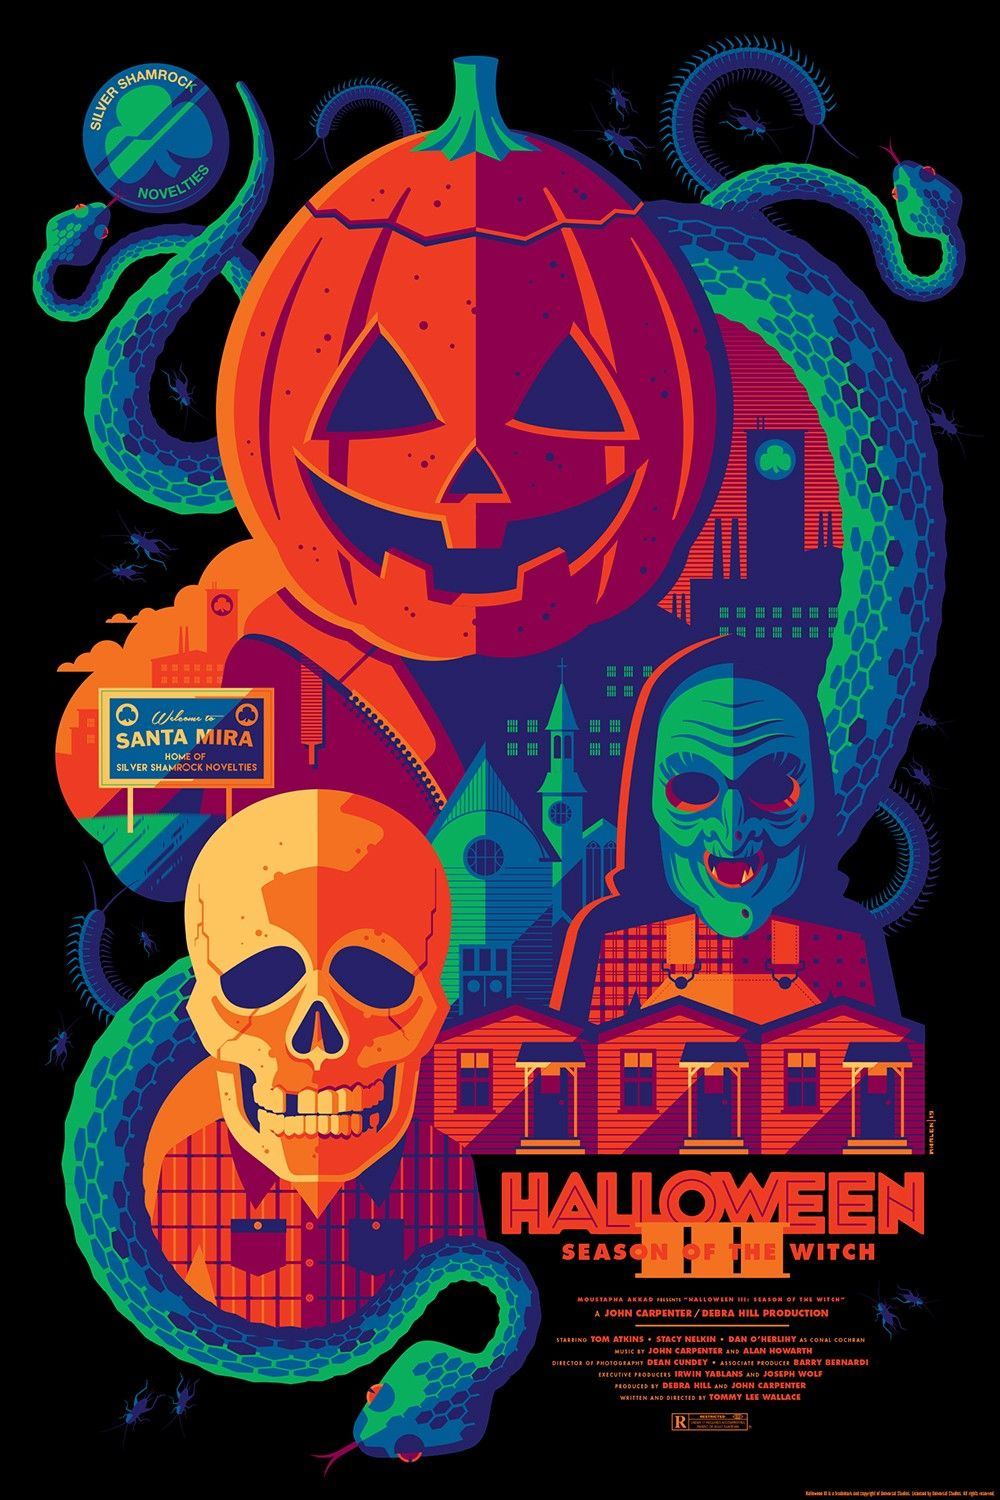 Pin by Pop Draw Plastic on Tom Whalen in 2020 Halloween